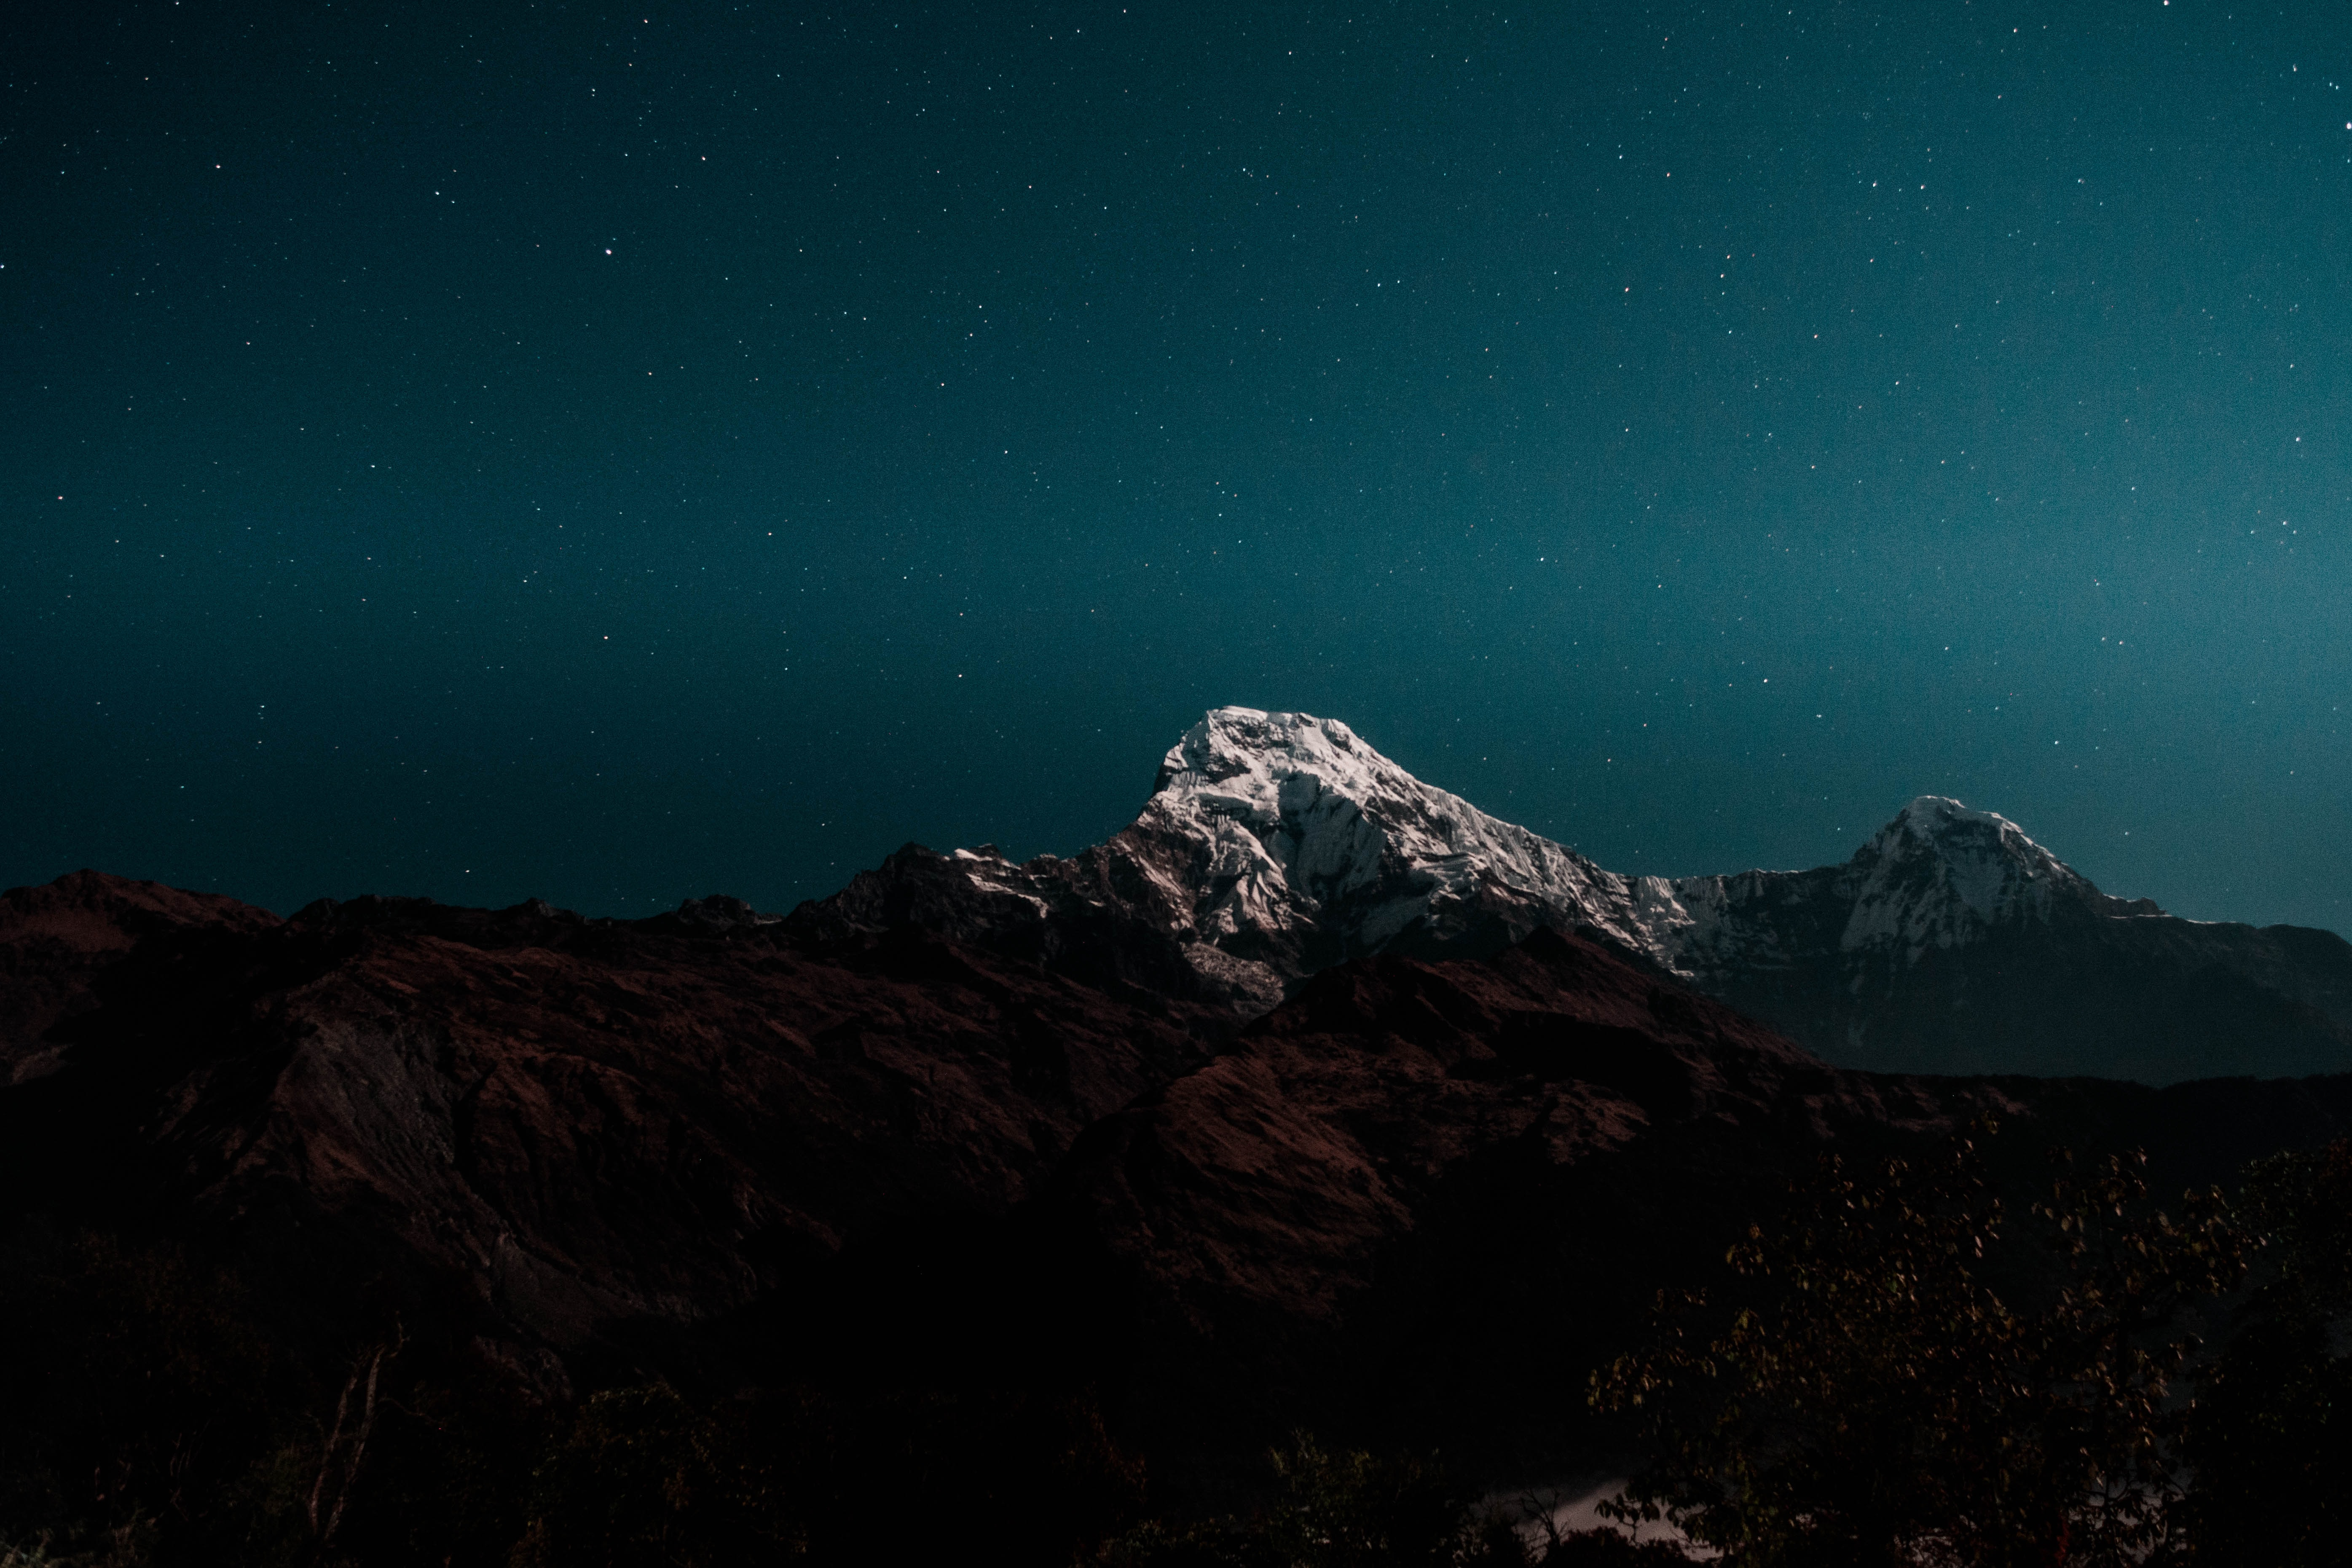 white and brown mountain during nighttime